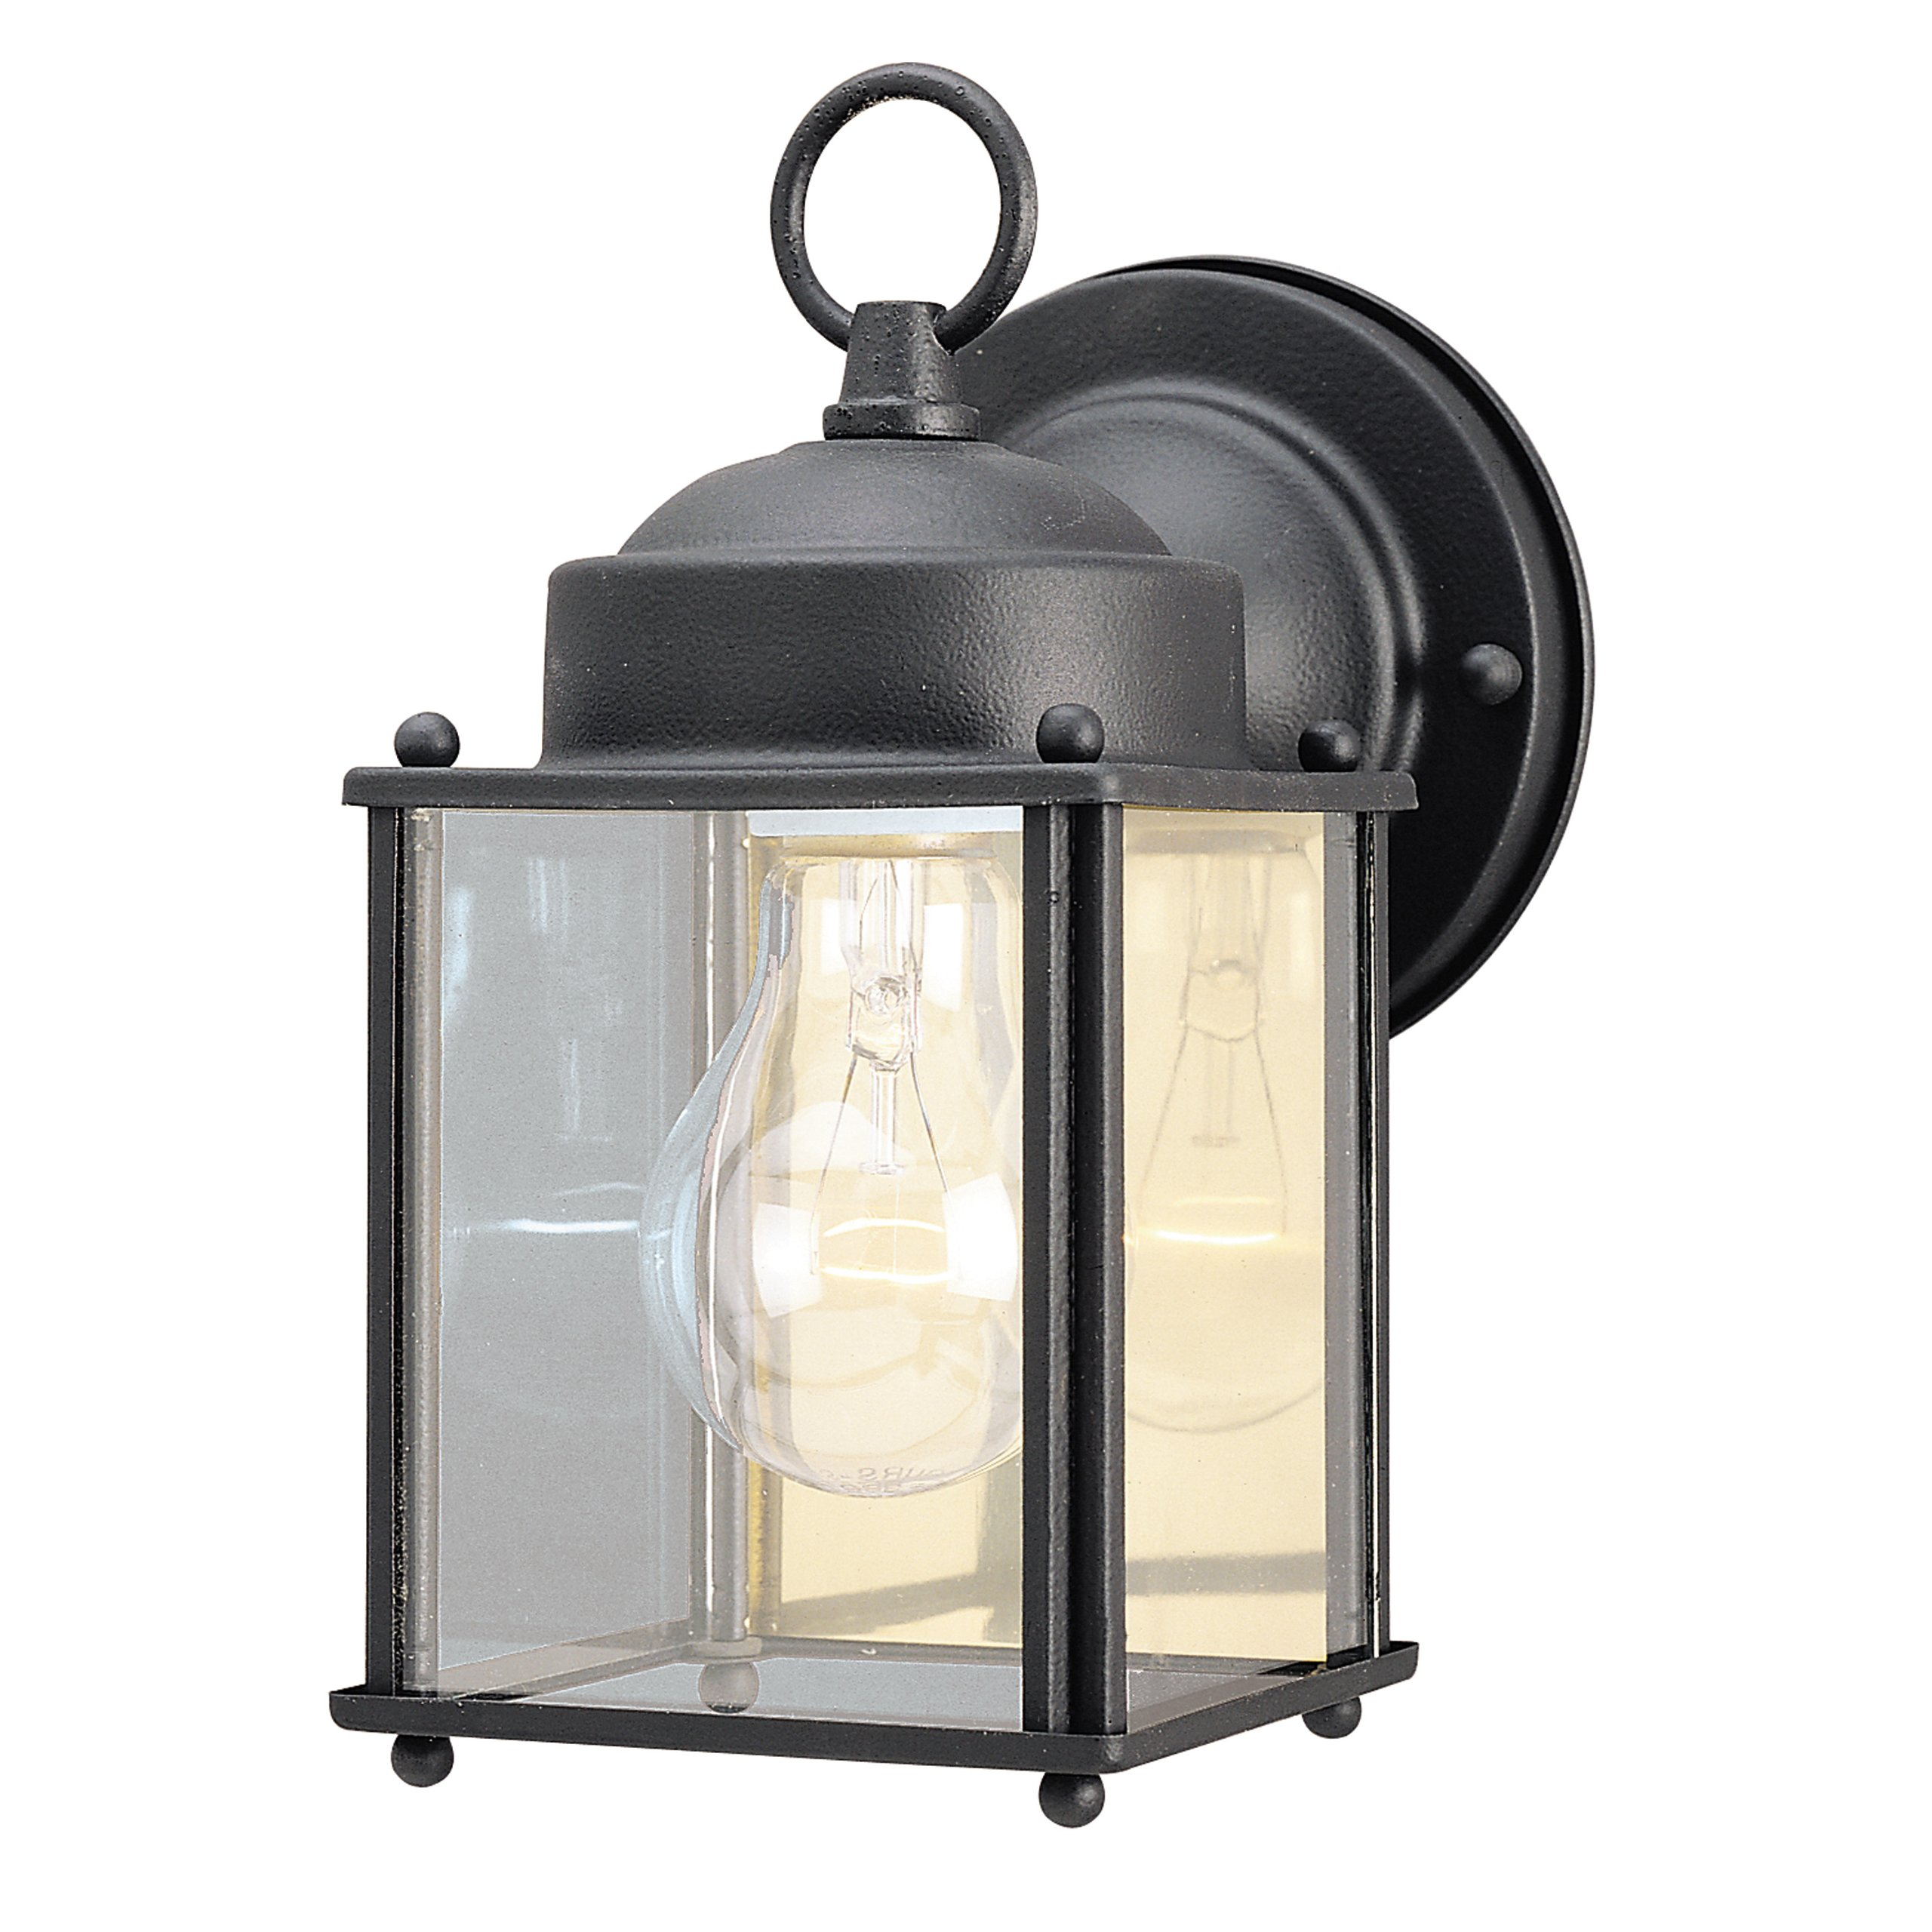 Westinghouse Lighting 6697200 One-Light Exterior Wall Lantern, Textured Black Finish on Steel with Clear Glass Panels, 1 Pack, by Westinghouse Lighting